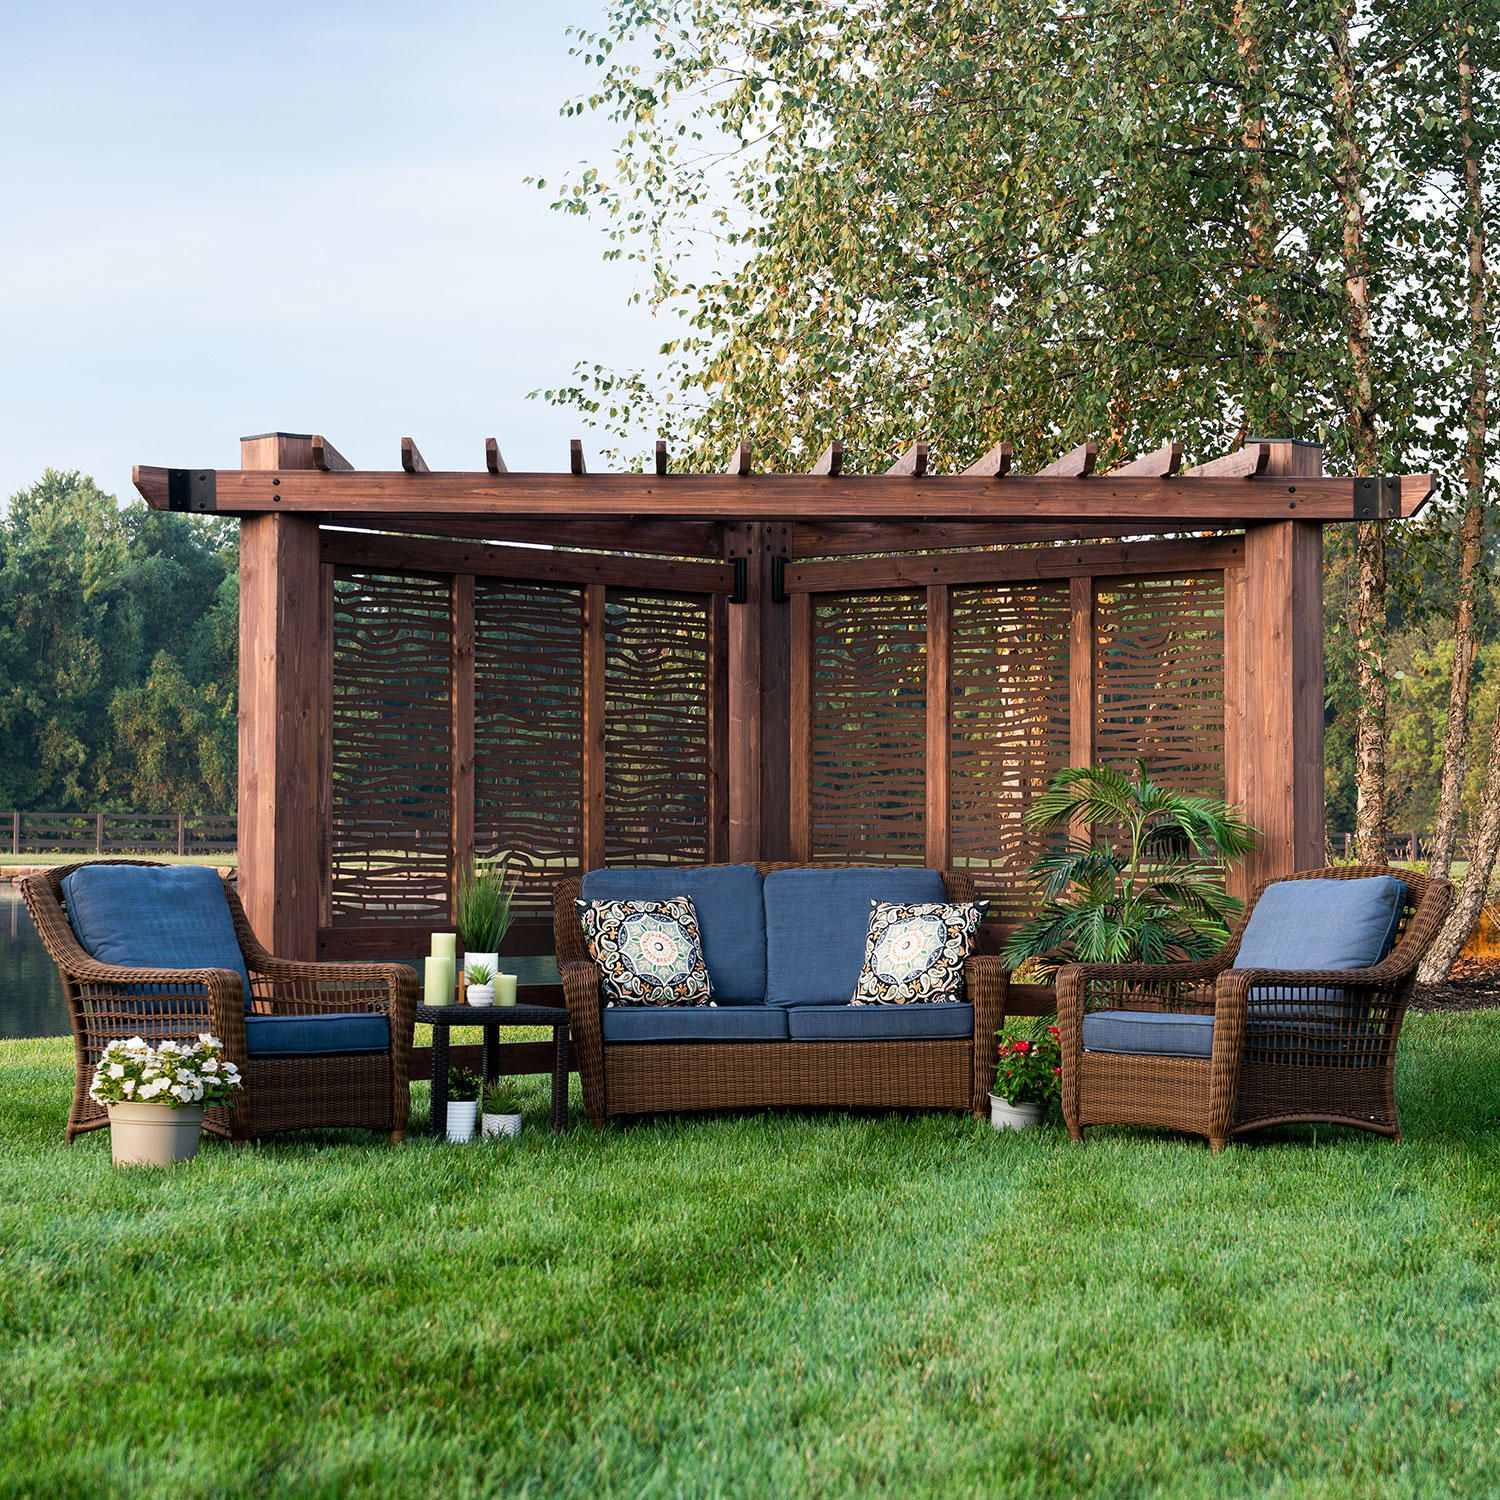 Backyard Discovery Cedar Cabana Pergola With Decorative Privacy Panels Bamboo Sam S Club In 2020 Backyard Structures Backyard Backyard Projects